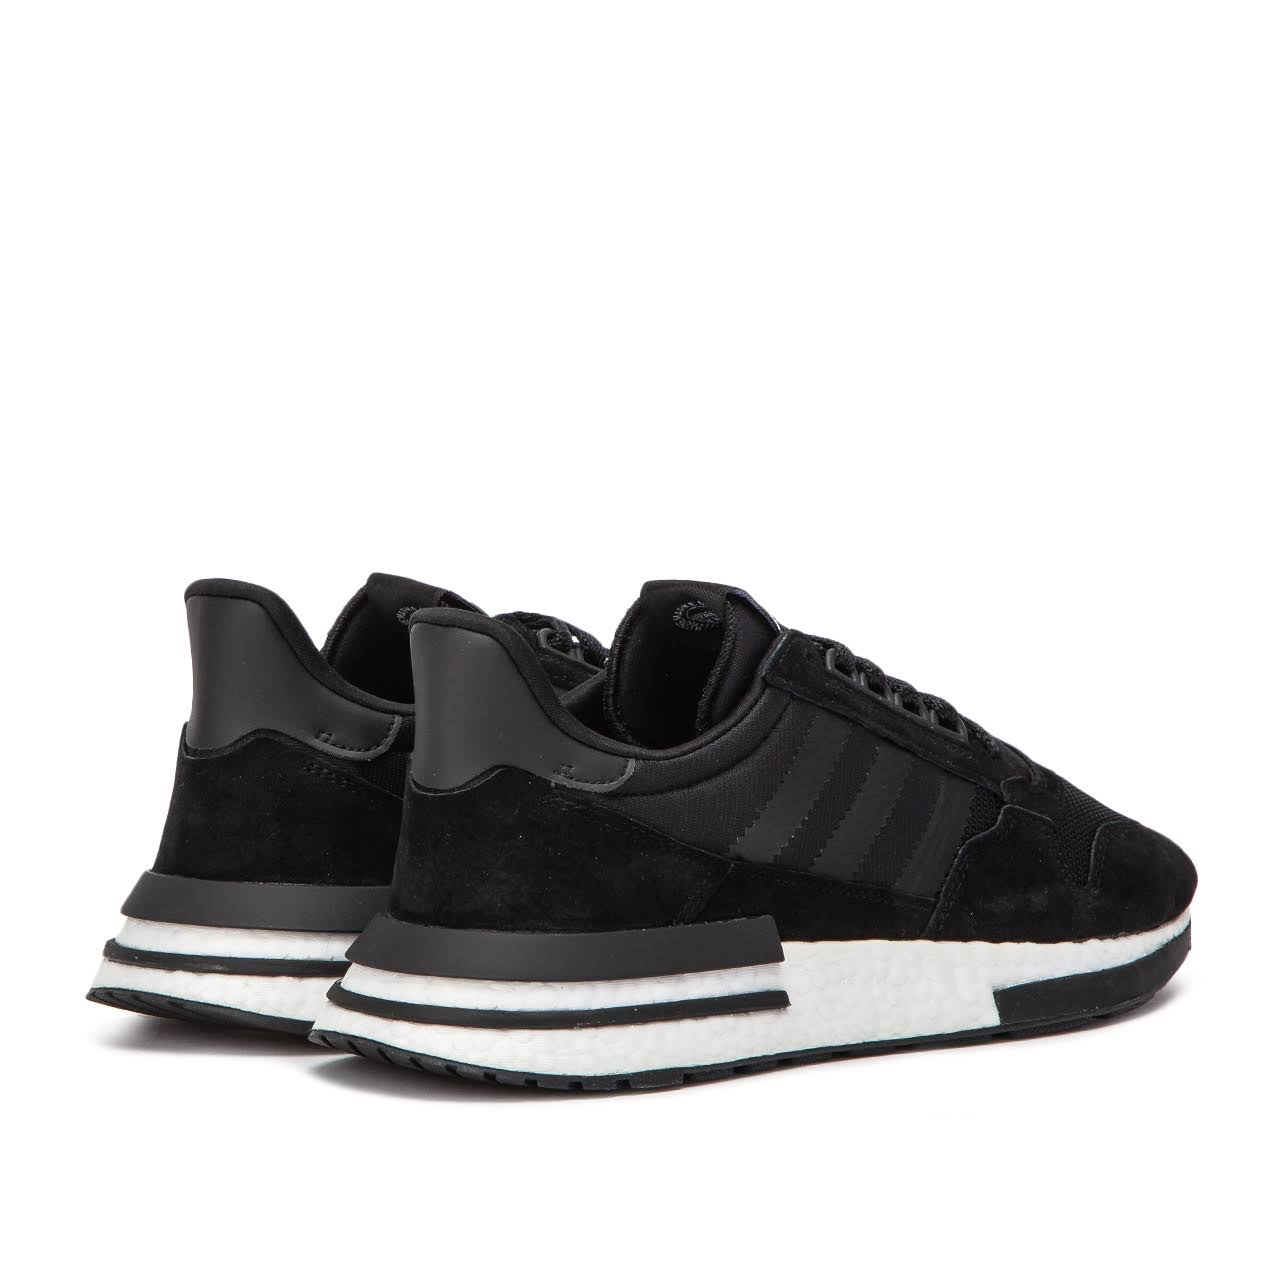 Originals 500 up Rm' Lace 'zx Sneakers Adidas 4qOFwd4